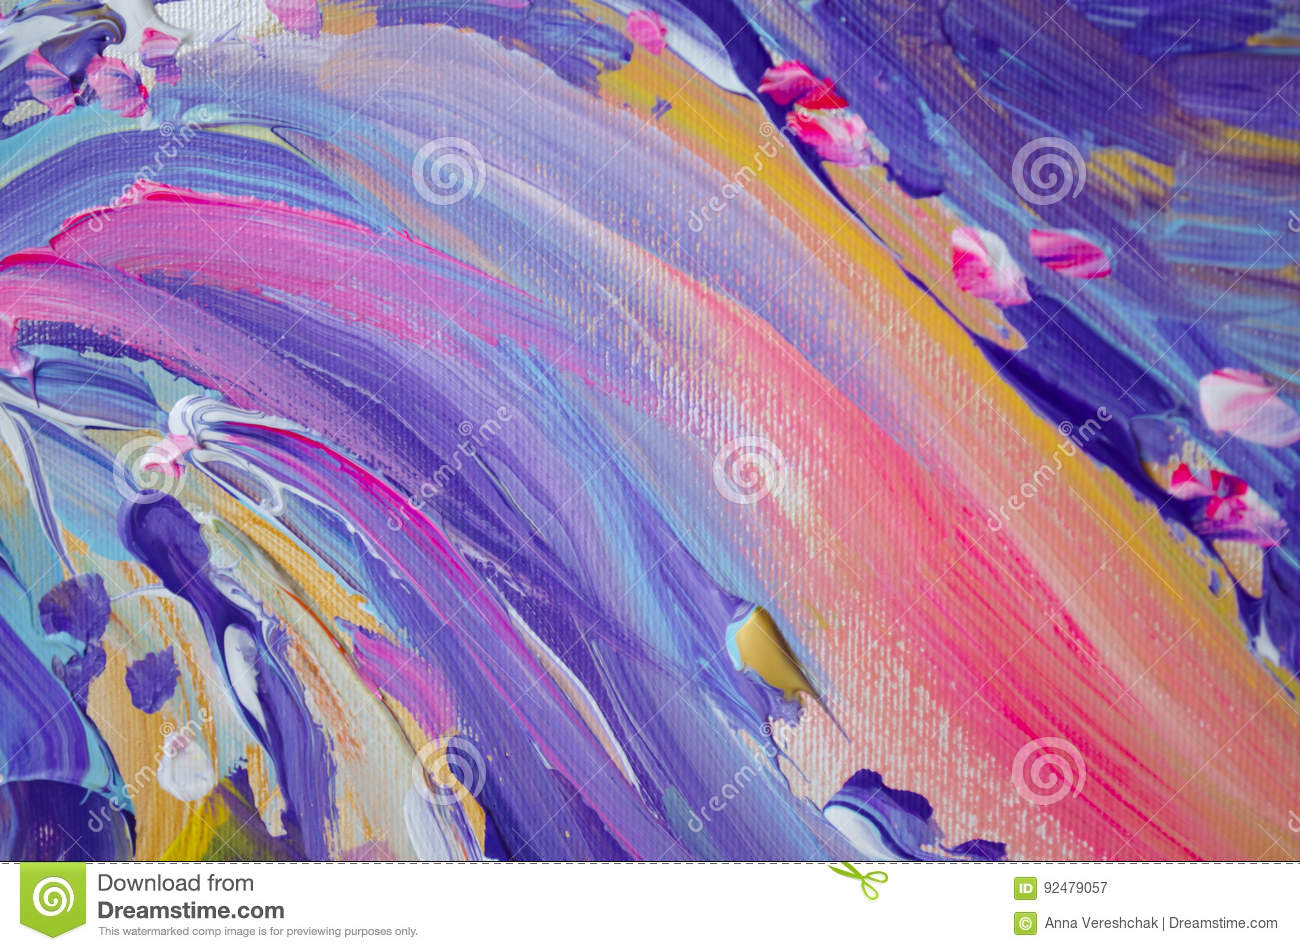 Hand drawn acrylic painting. Abstract art background. Acrylic painting on canvas. Color texture. Fragment of artwork. Brushstrokes